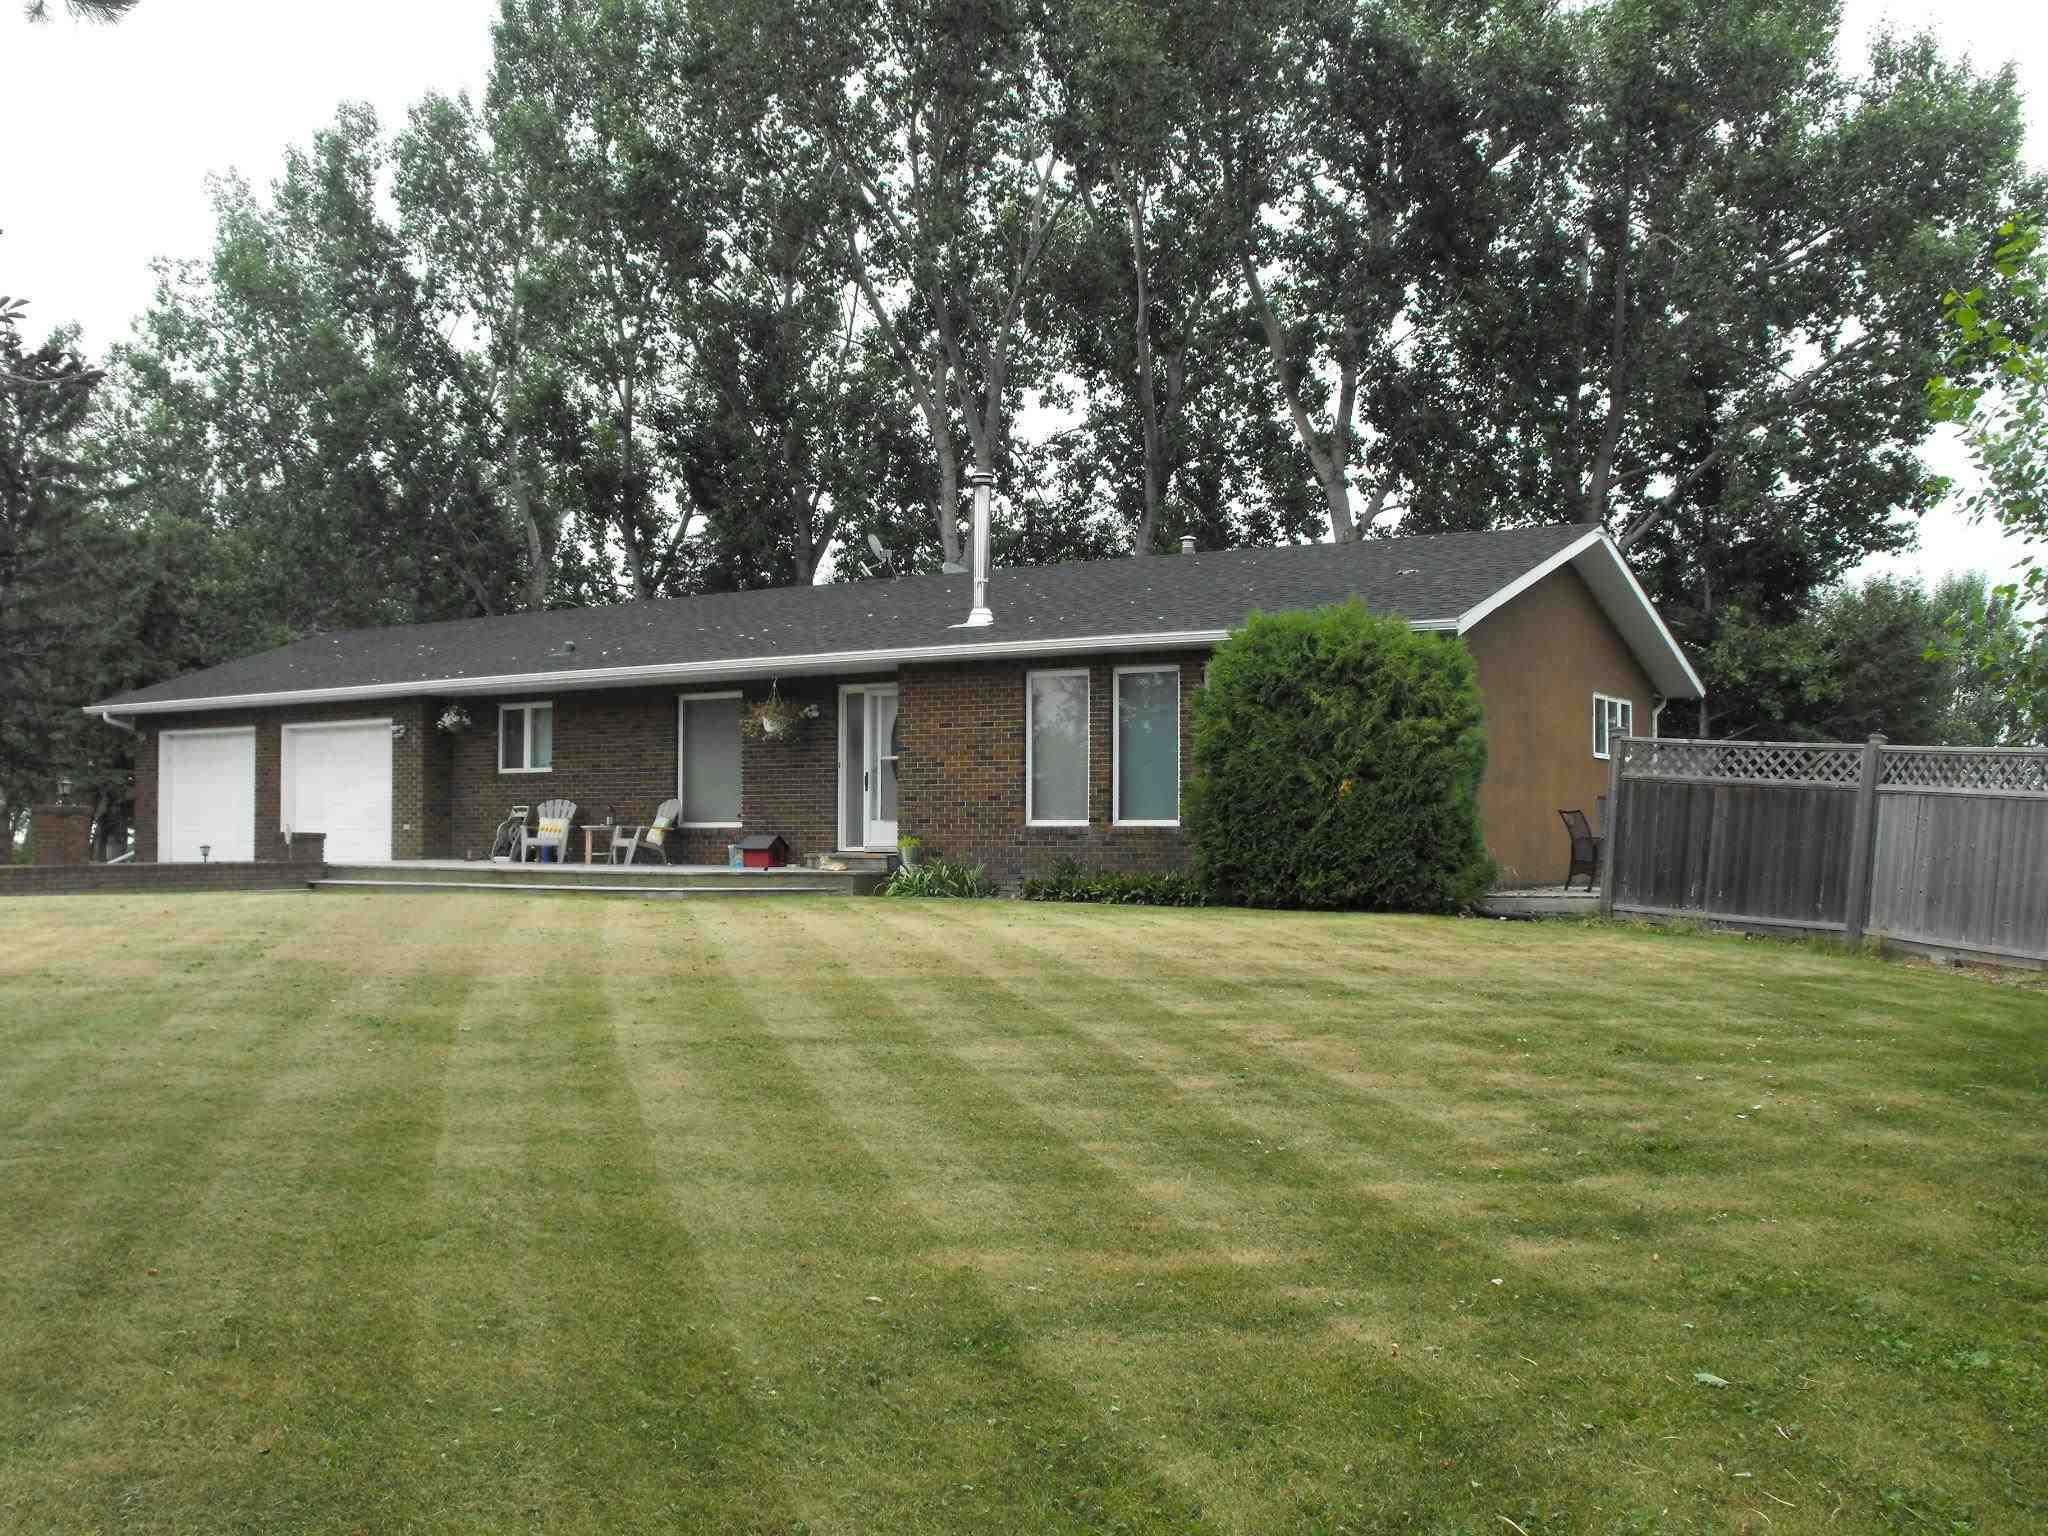 Main Photo: 104 59527 Sec Hwy 881: Rural St. Paul County House for sale : MLS®# E4255827